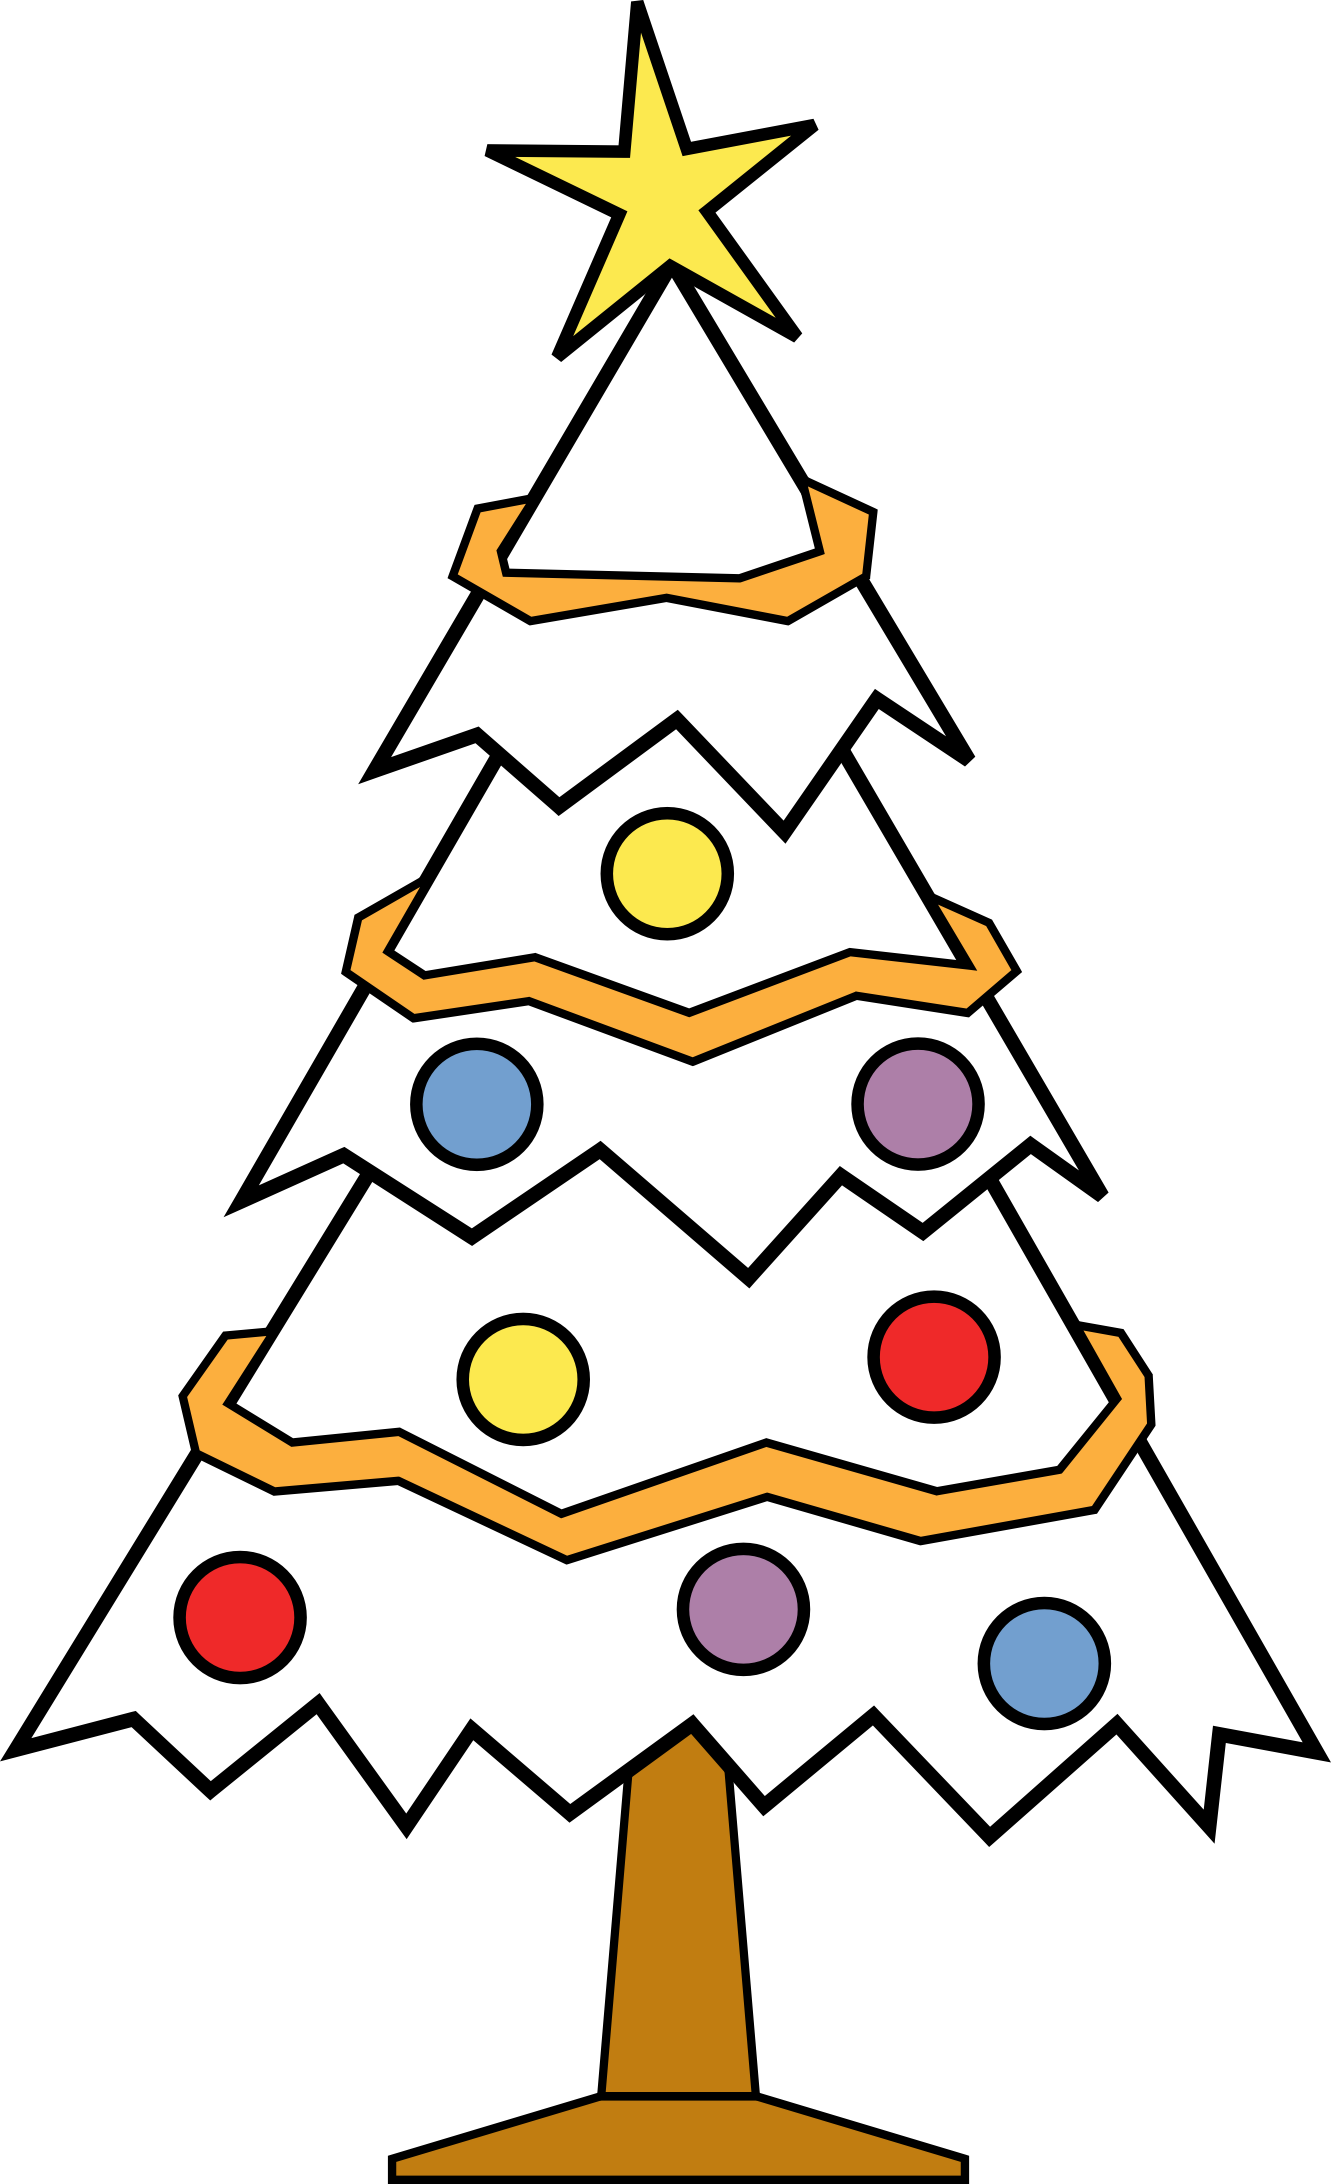 Presents under the tree clipart jpg freeuse download Christmas Tree Artwork | Free Download Clip Art | Free Clip Art ... jpg freeuse download